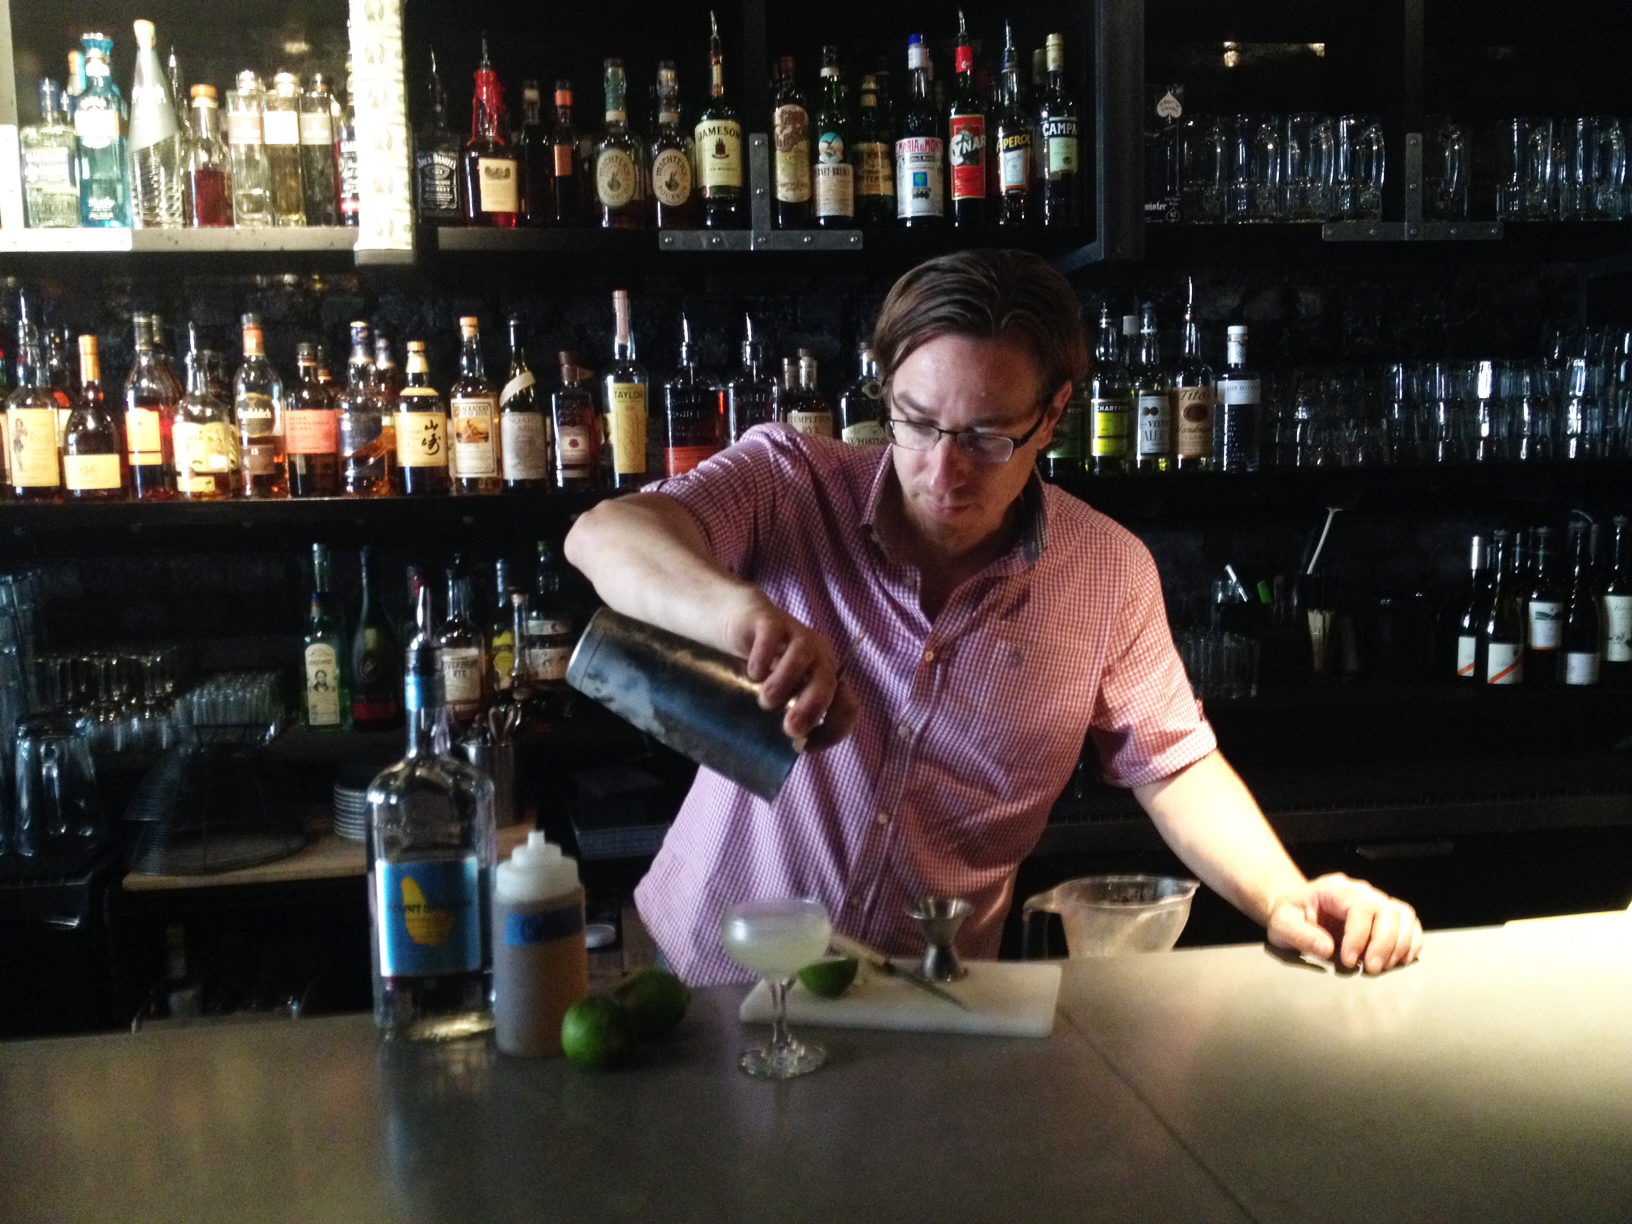 The daiquiri: Steeped in D.C. history, not red dye